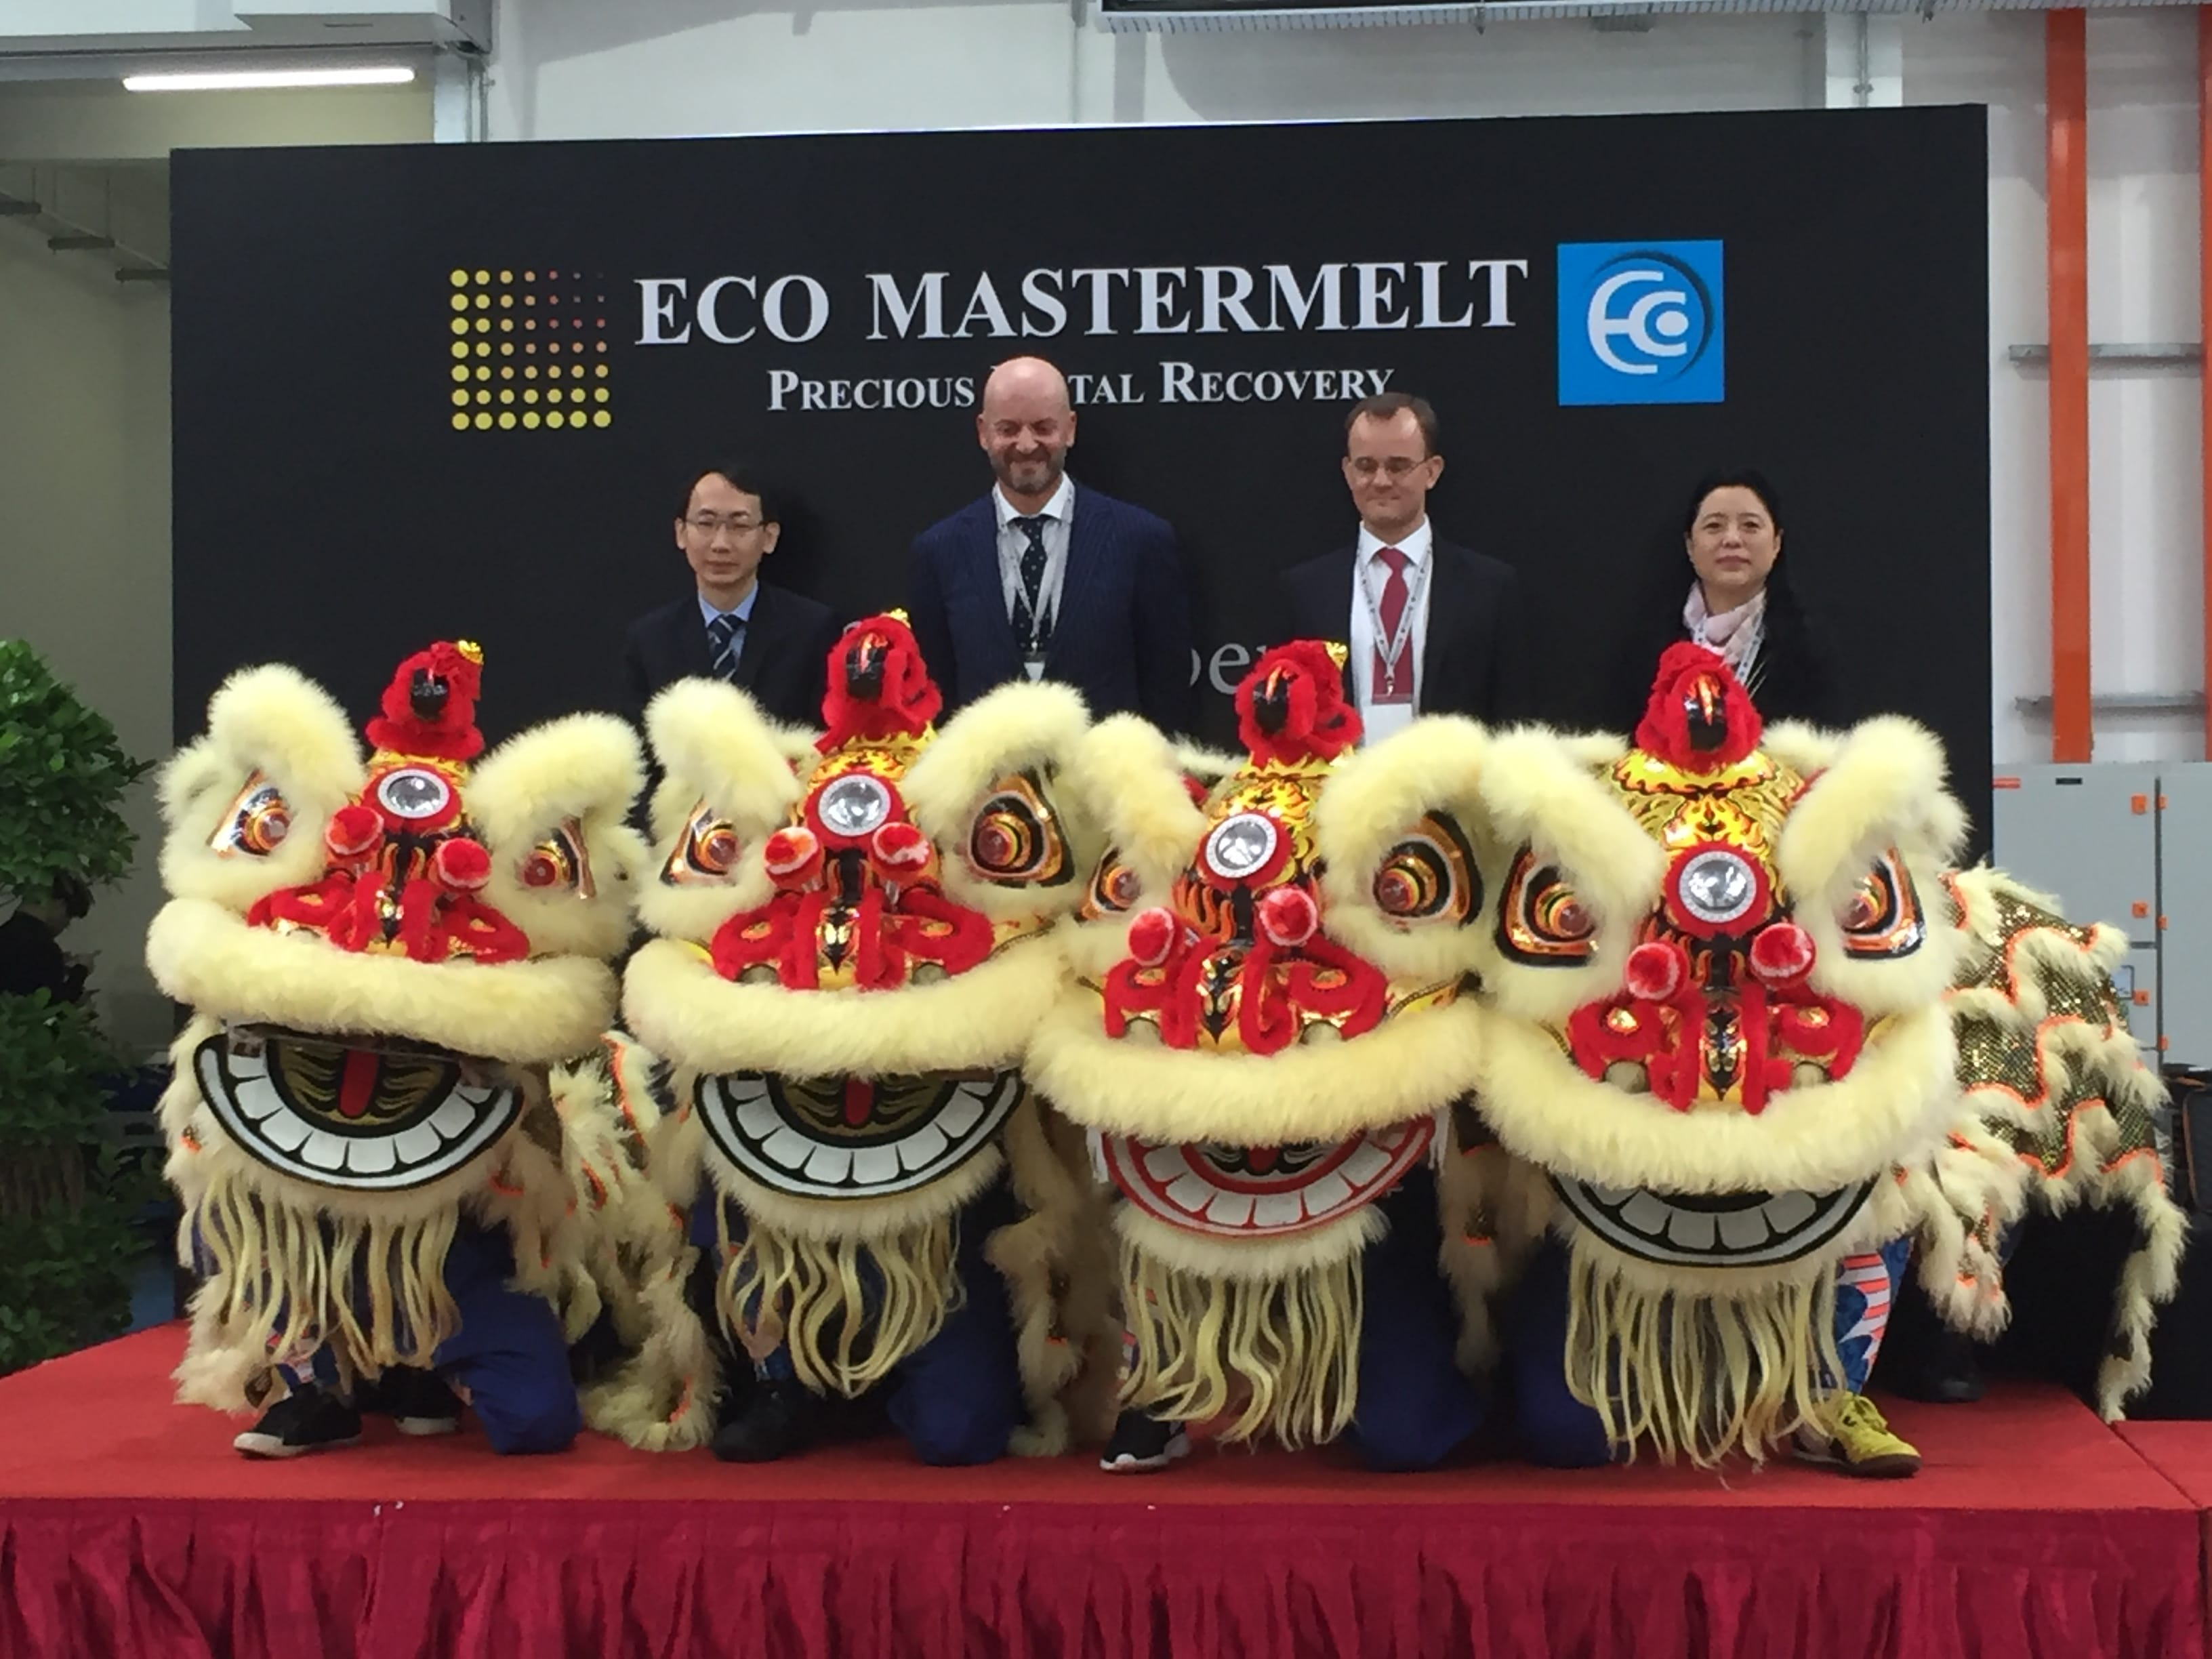 'Lion' dancers perform at the opening ceremony of ECO Mastermelt's new Singapore plant!